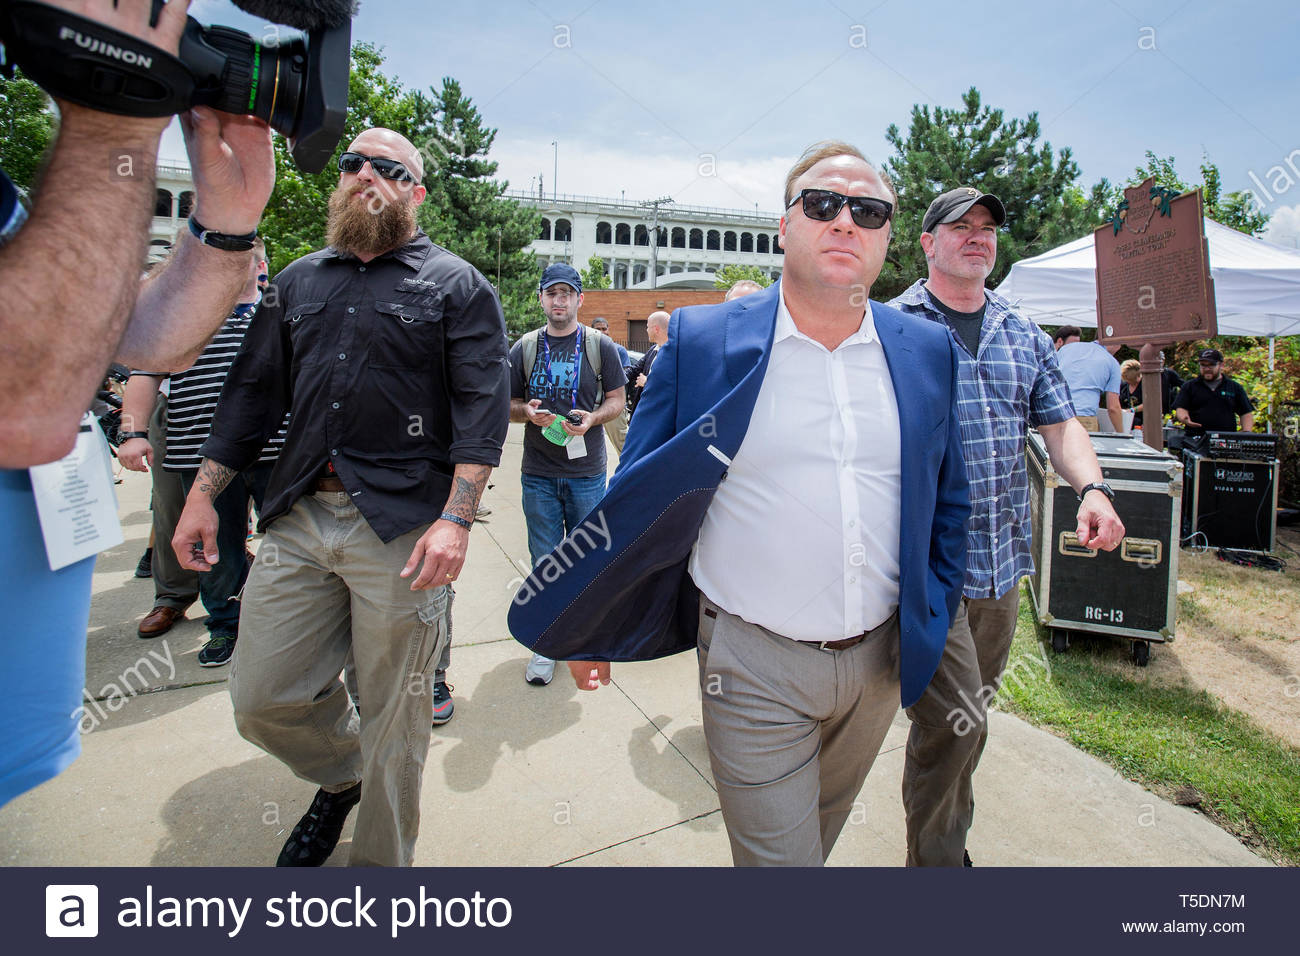 Radio shock jock, conspiracy theorist and founder of Infowars, Alex Jones, at a pro gun rally at the start of the Republican National Convention in Cleveland. - Stock Image